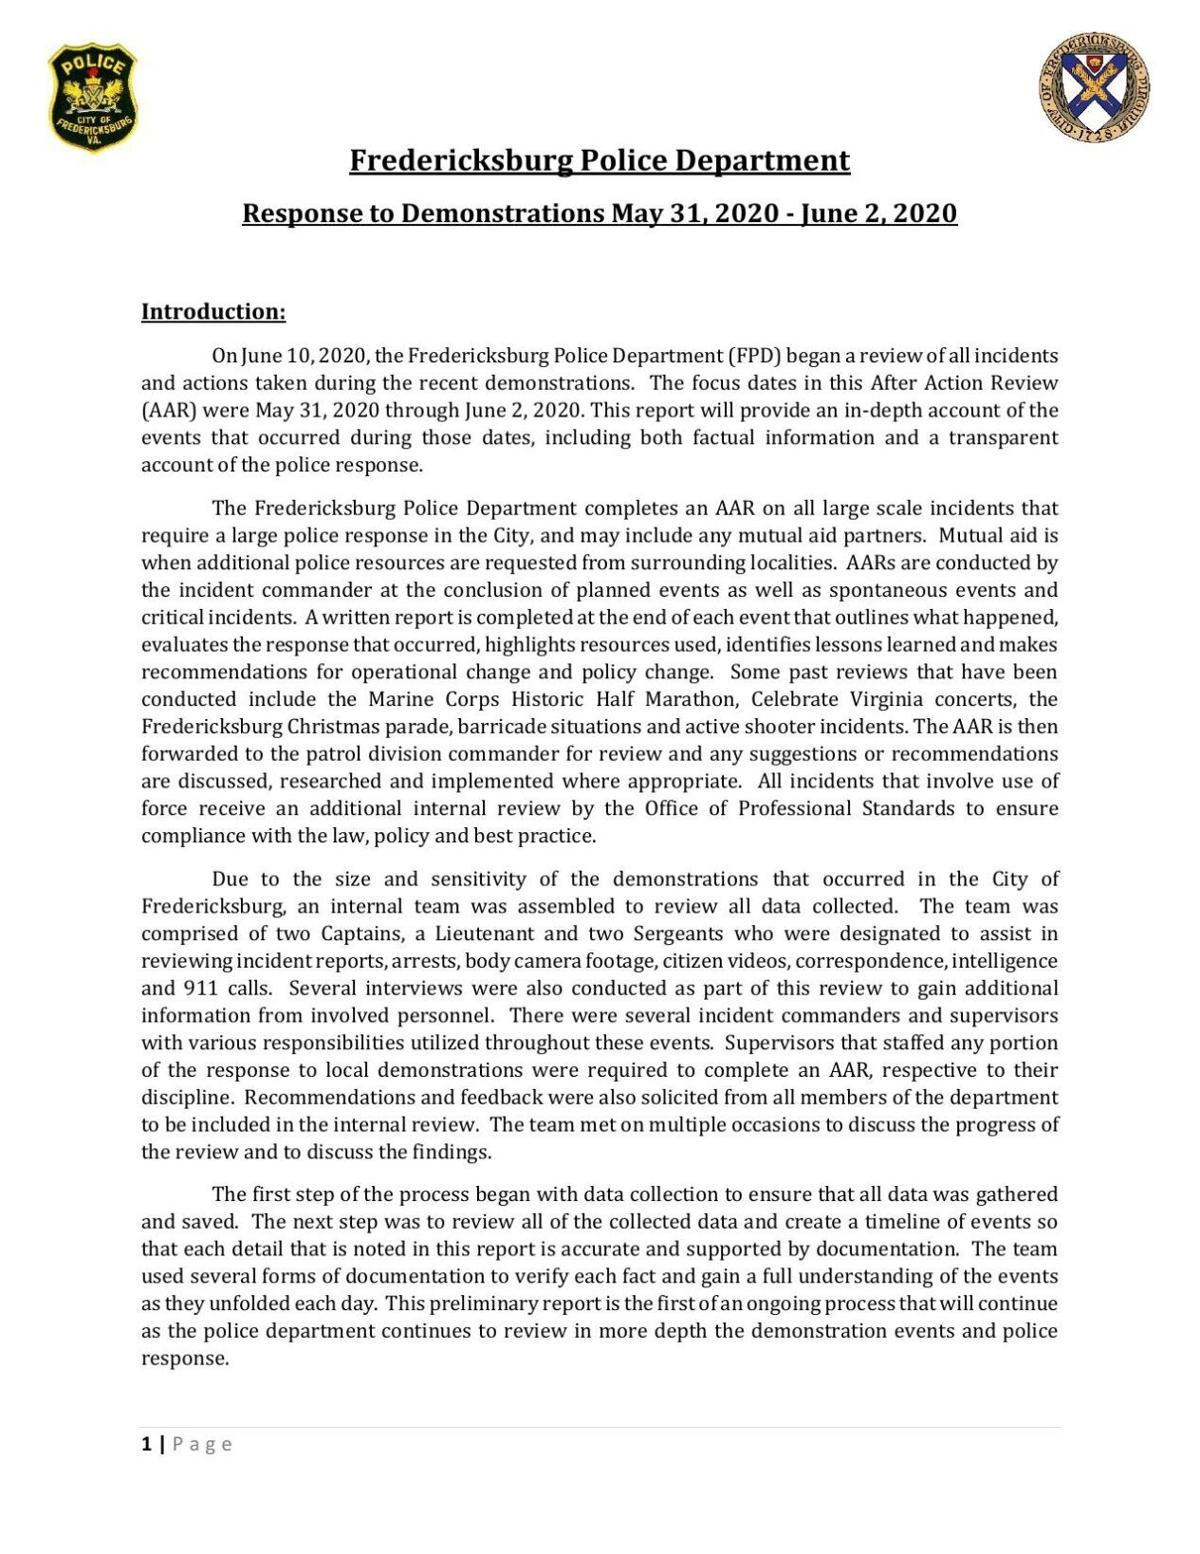 Fredericksburg Police Department Response to Demonstrations May 31, 2020 - June 2, 2020